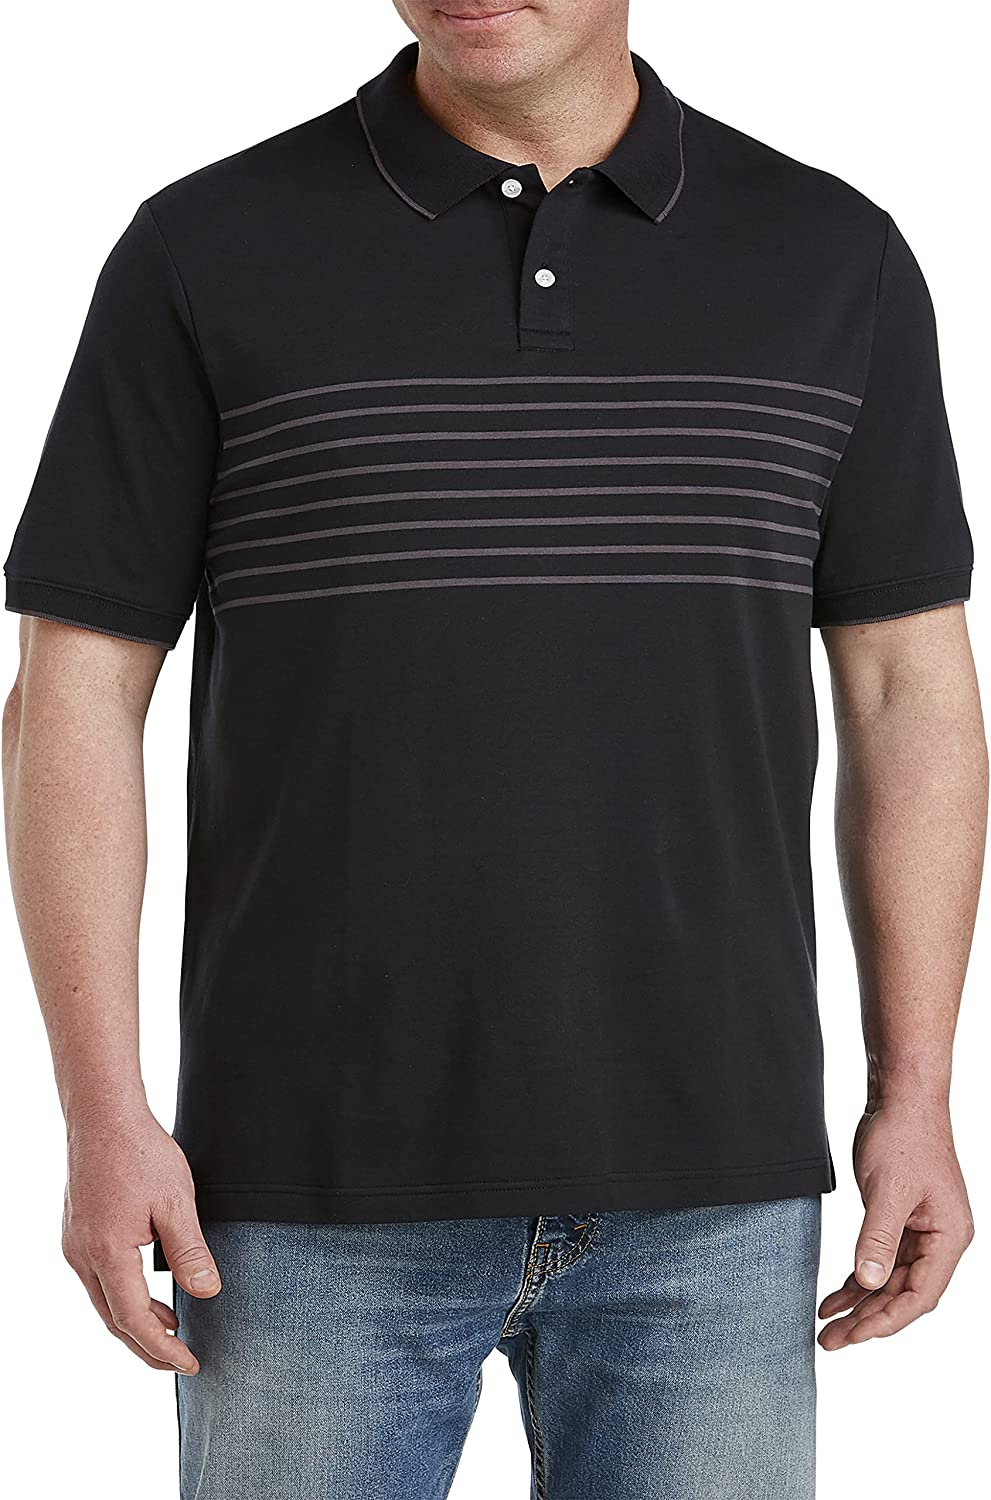 Harbor Bay by DXL Big and Tall Chest Stripe Polo Shirt, Black